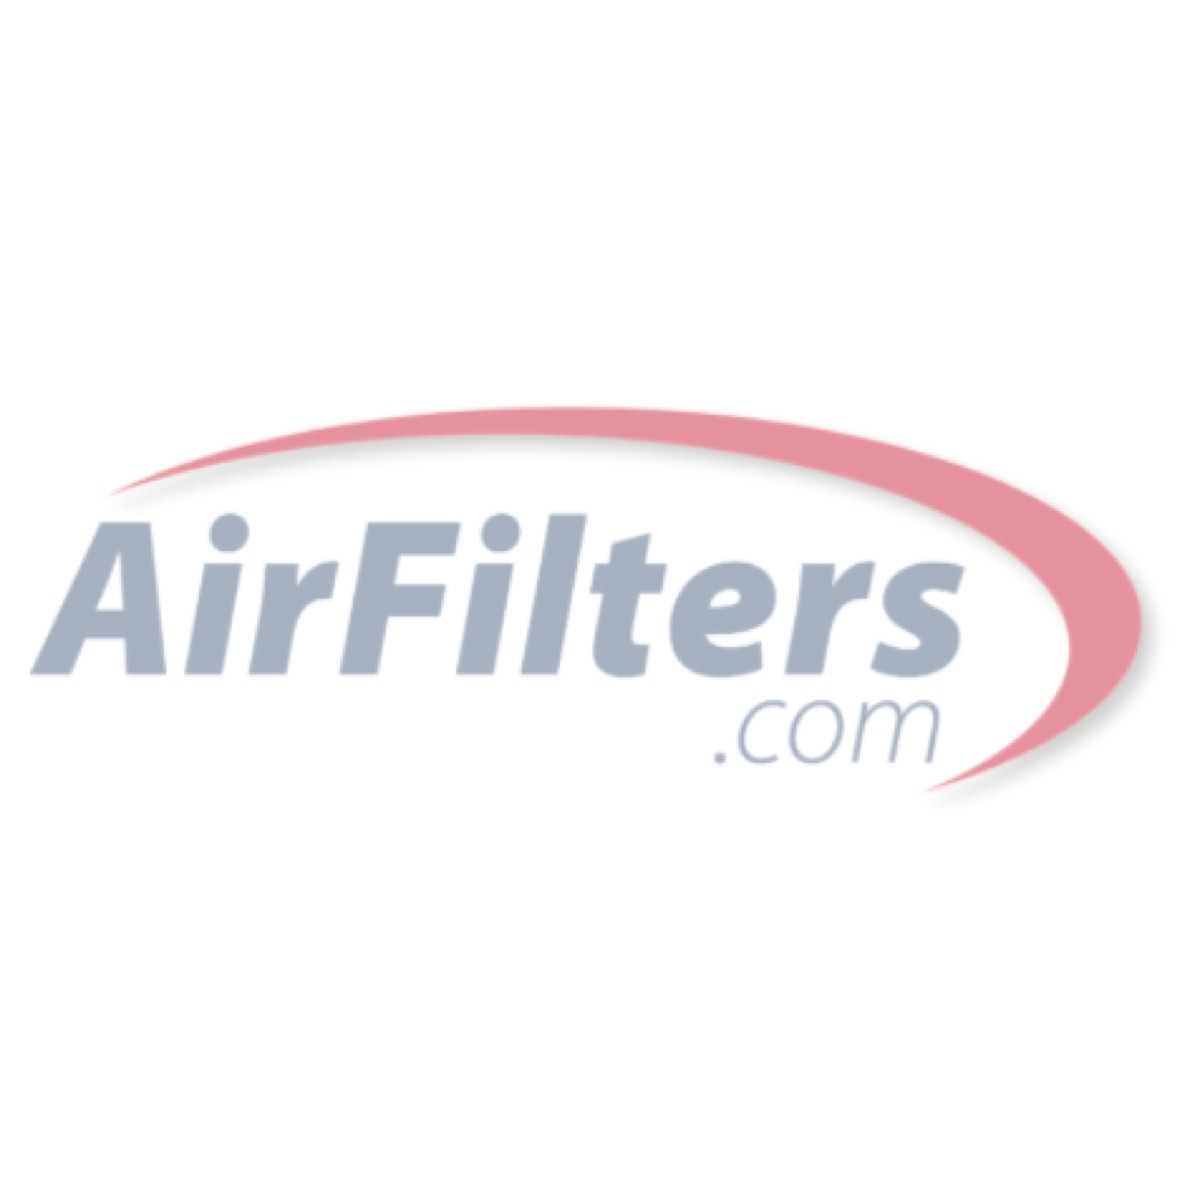 24x25x4.5 (23.75x24.38x4.38) Carrier® EZ Flex Filters by Accumulair®